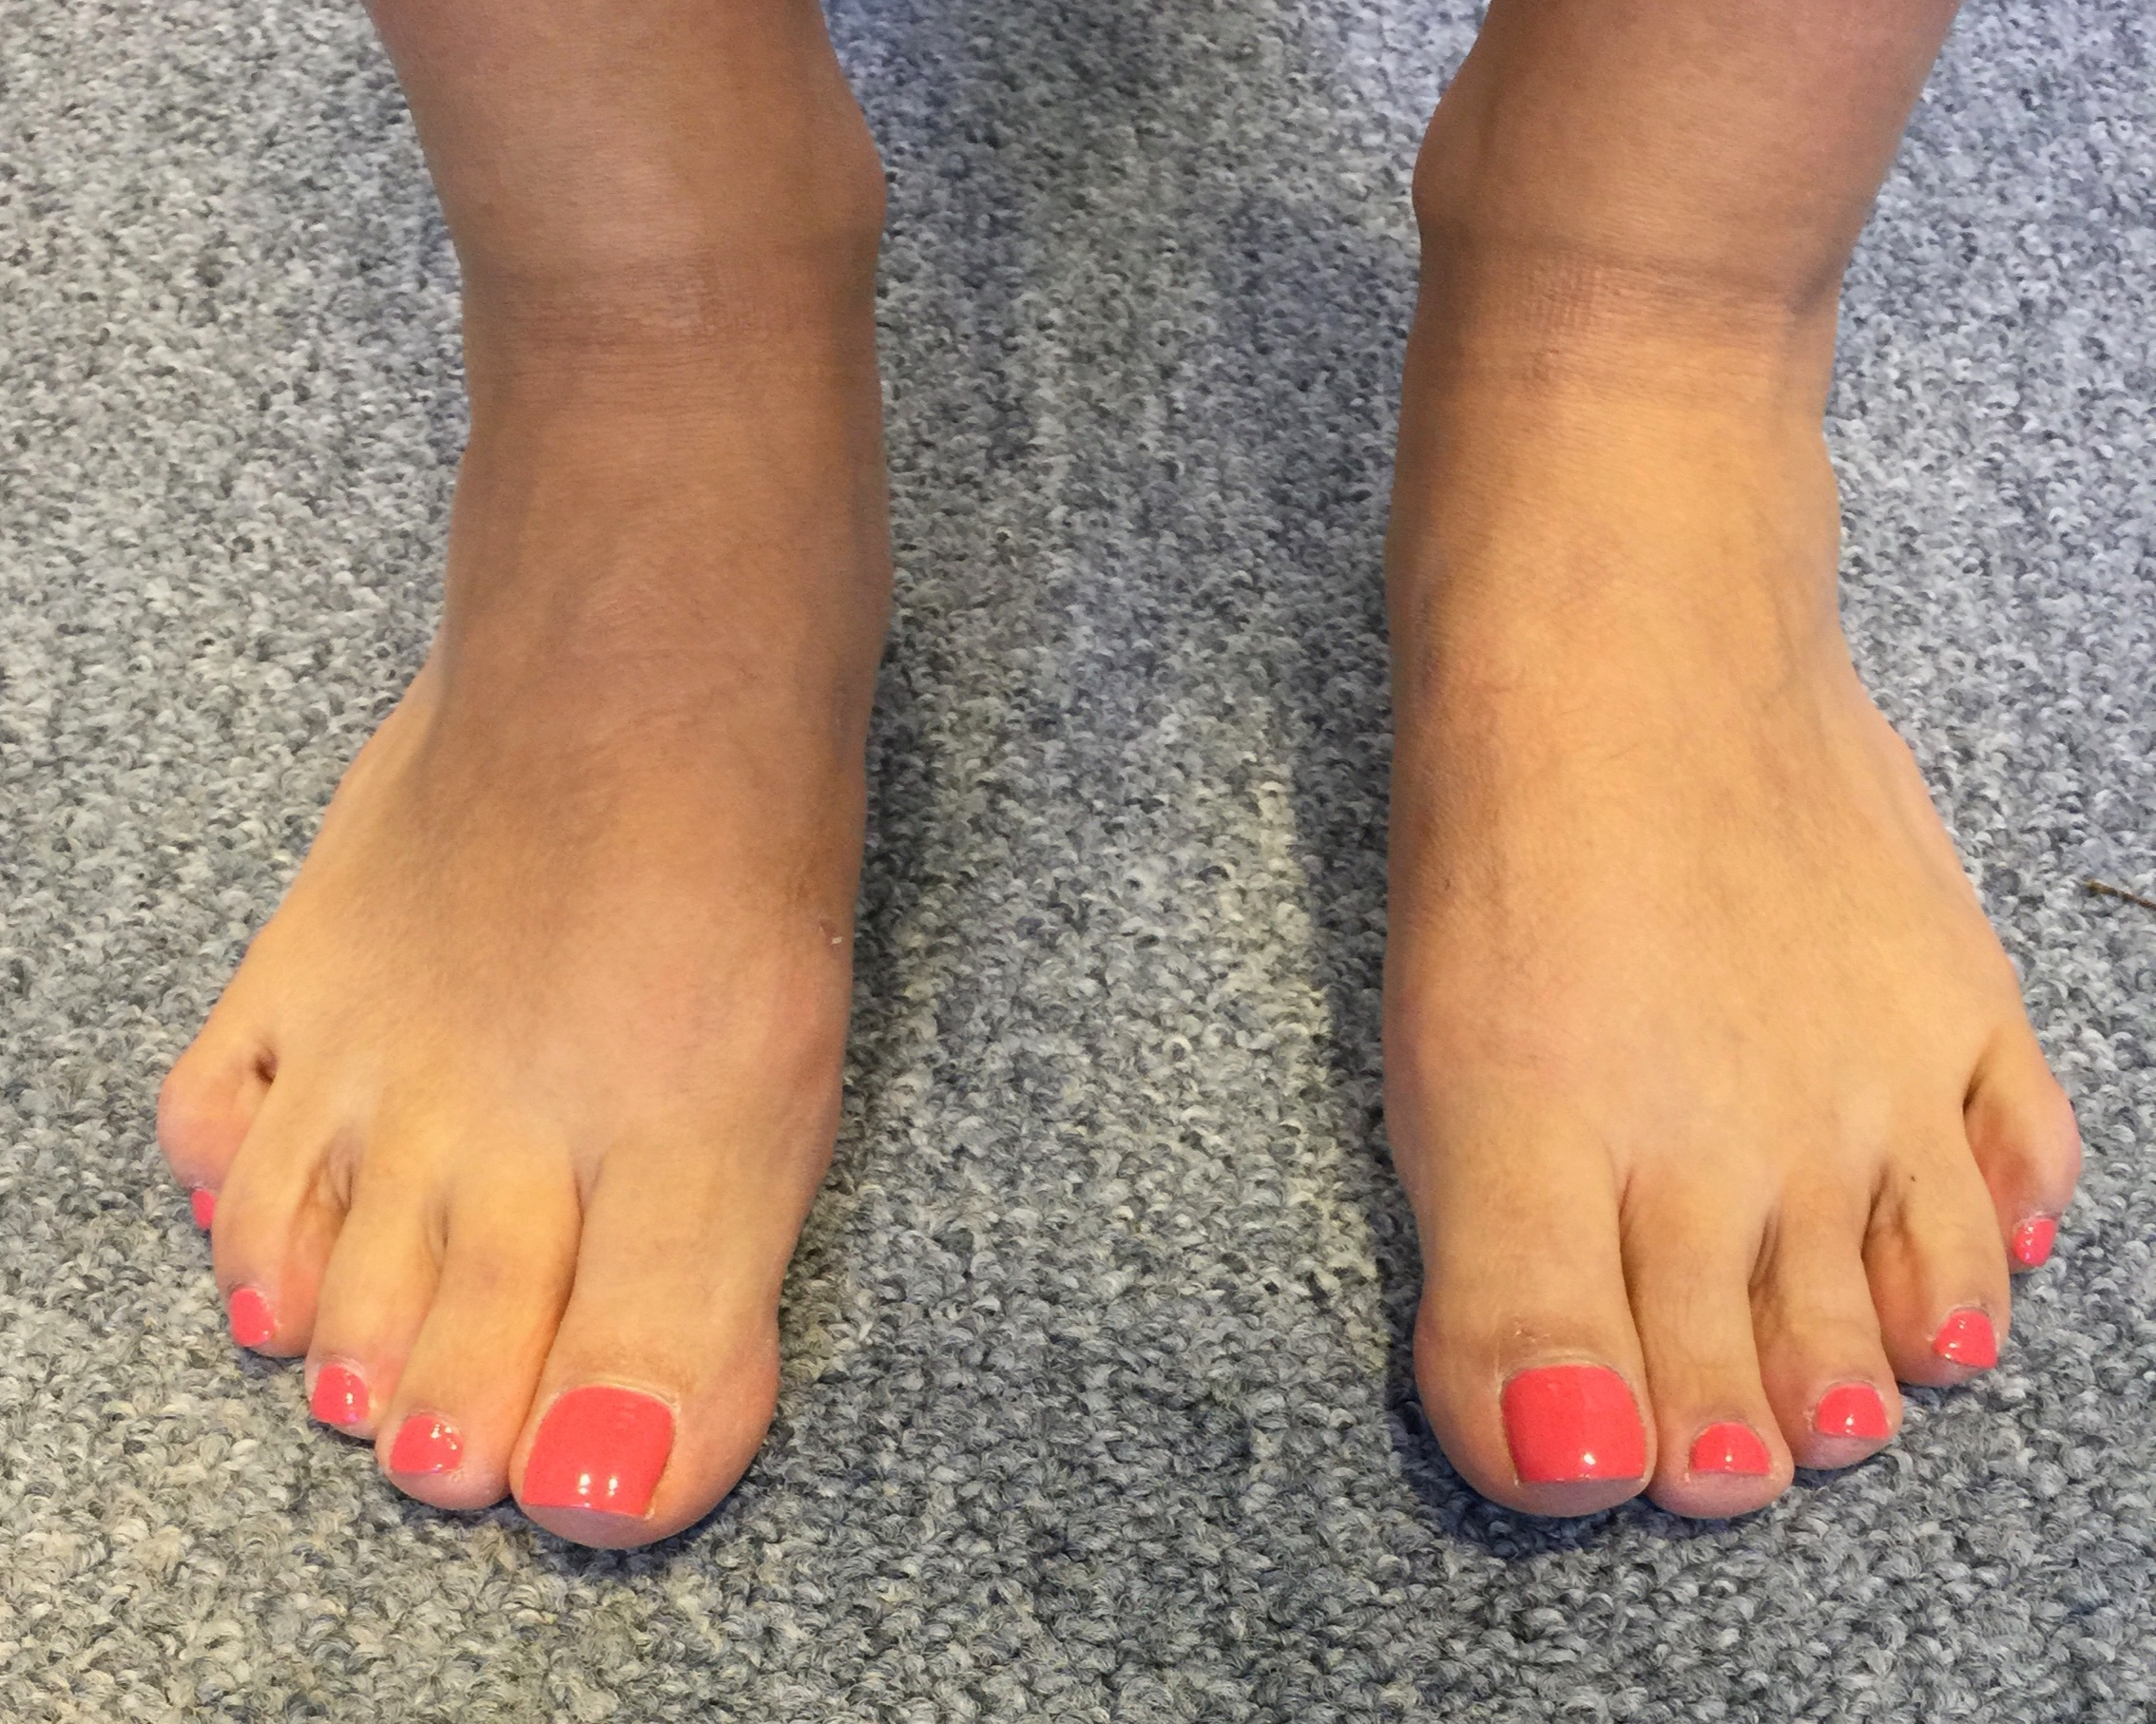 Case 6: Six months after MICA (ProStep)